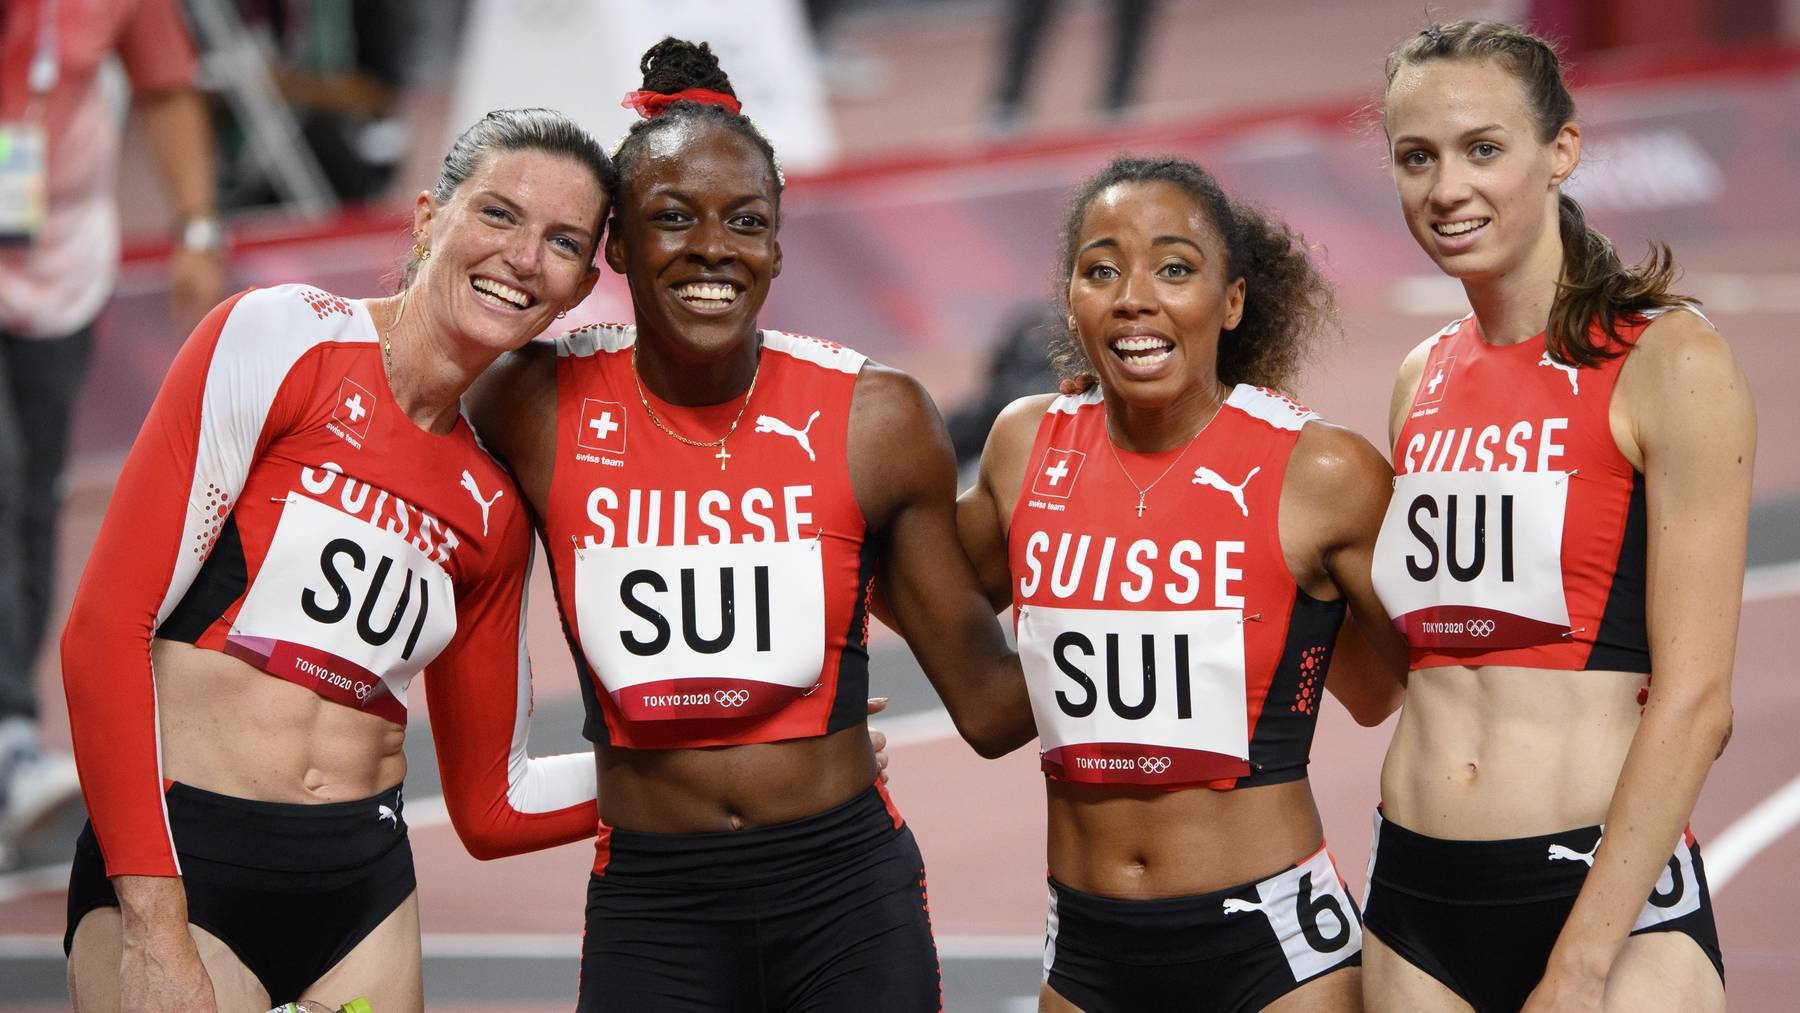 From left, Lea Sprunger, Yasmin Giger, Rachel Pellaud and Silke Lemmens of Switzerland react after crossing the finish line in the women's athletics 4x400m relay heat at the 2020 Tokyo Summer Olympics in Tokyo, Japan, on Thursday, August 05, 2021.